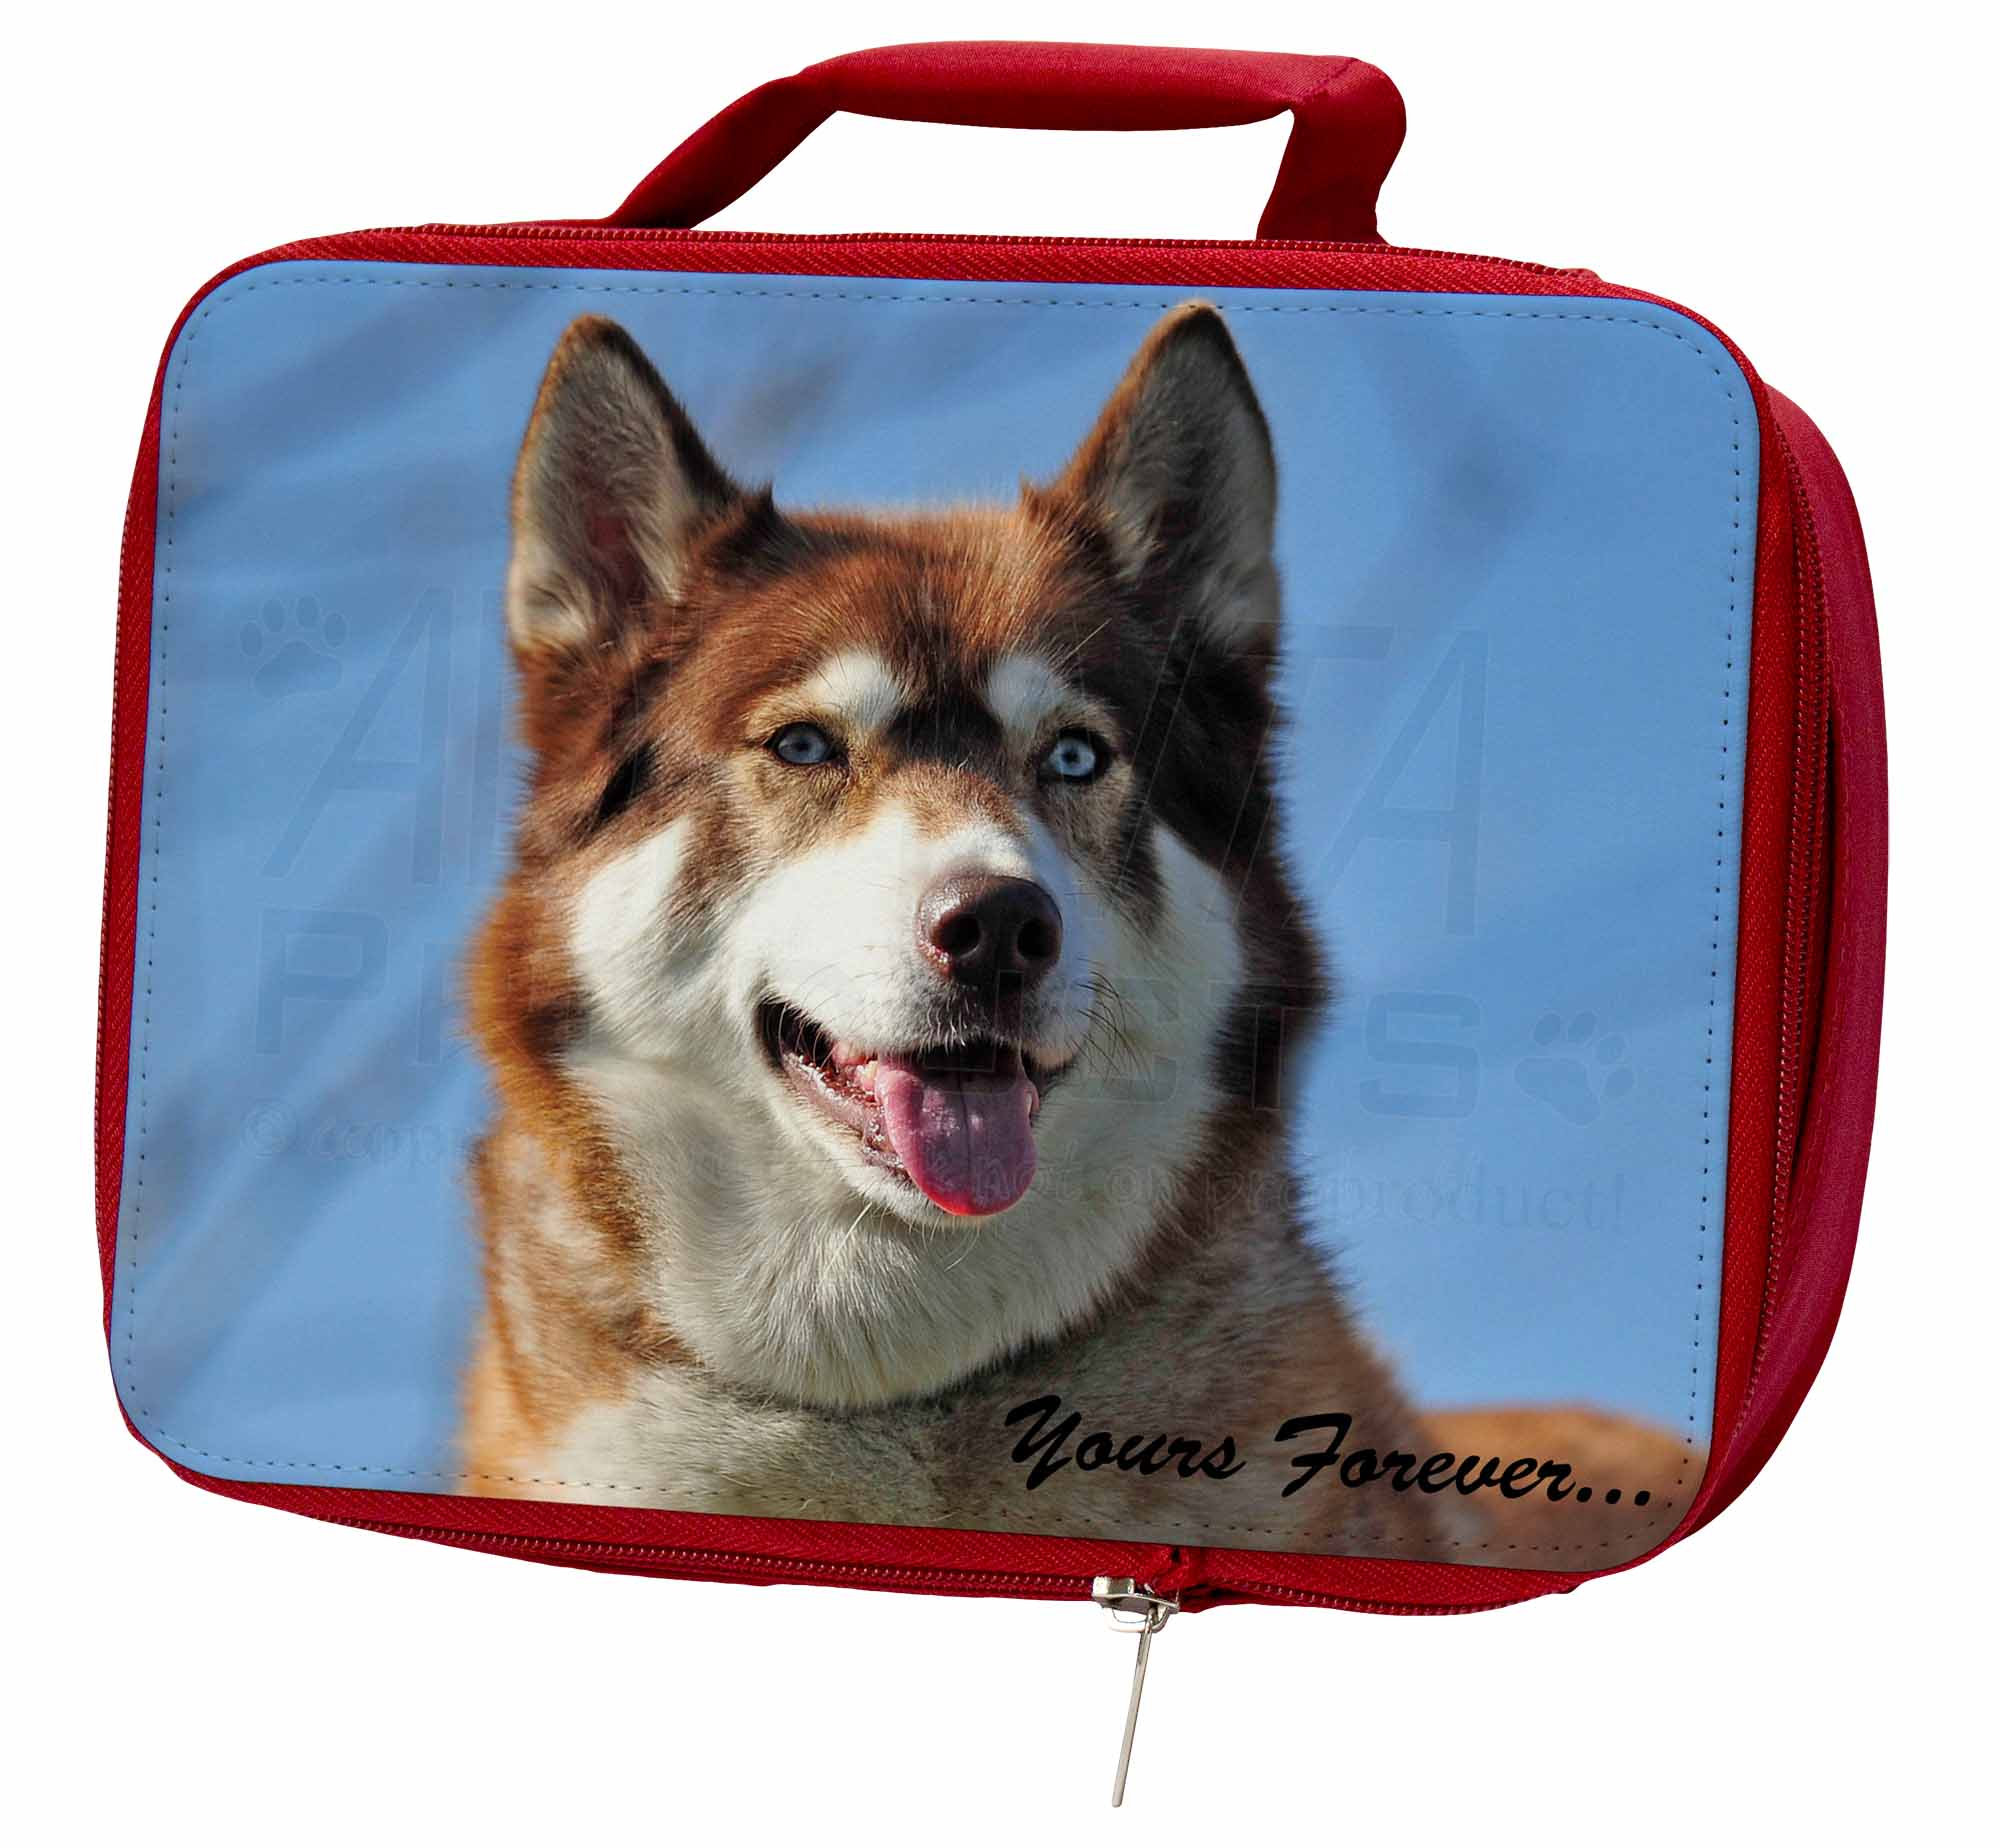 Red Husky 'Yours Forever' Insulated Red School Lunch Box/Picnic Bag, AD-H68yLBR AD-H68yLBR Bag, 084d74